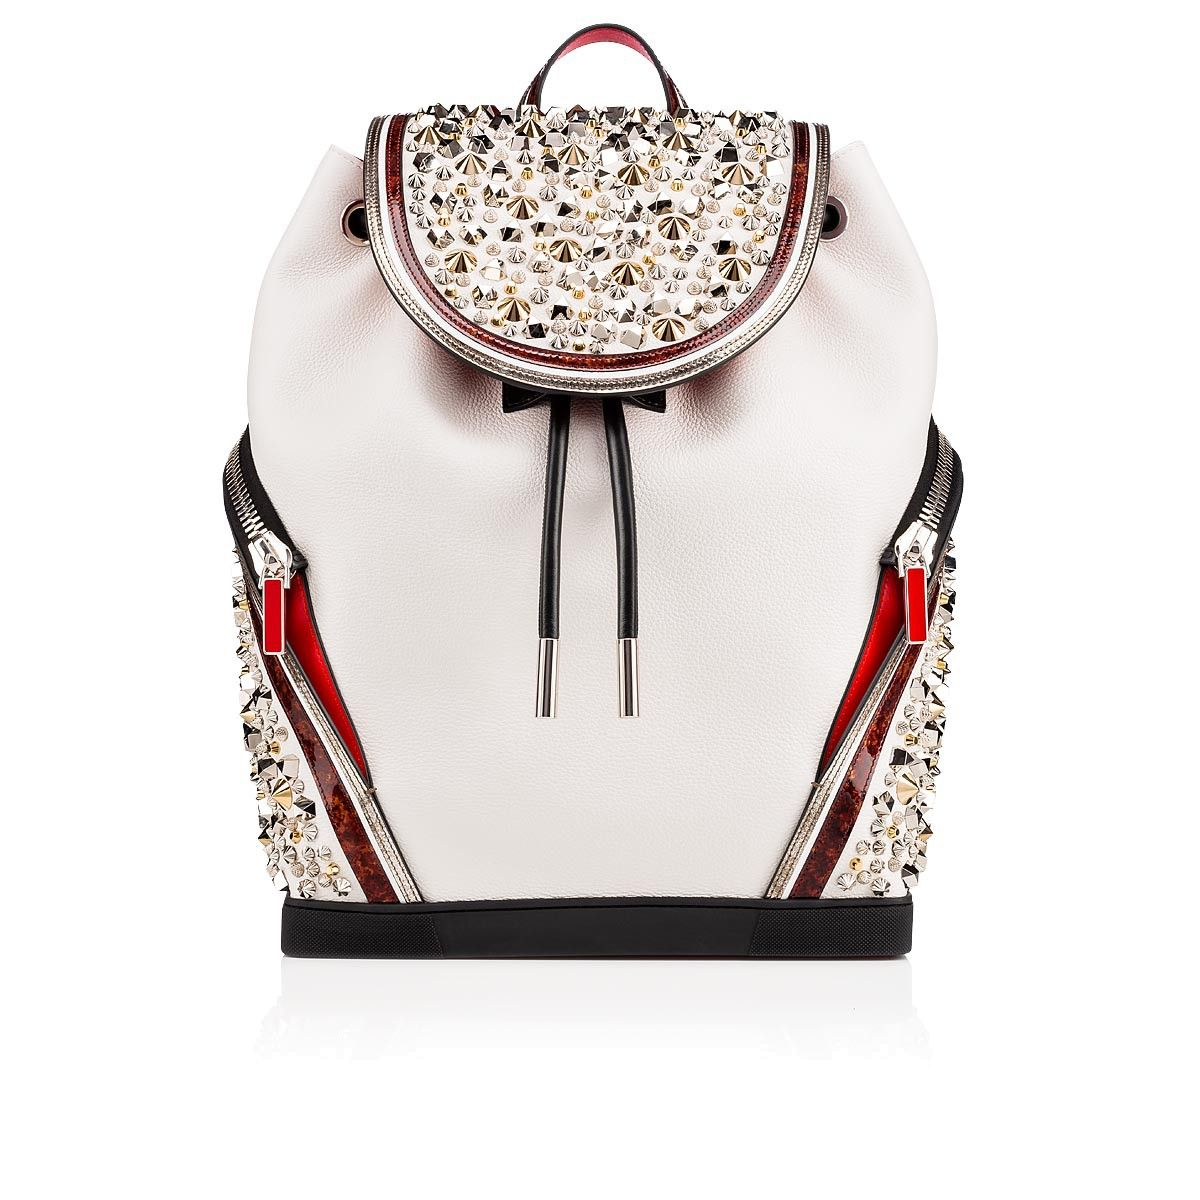 23148dfa2c7 CHRISTIAN LOUBOUTIN | Explorafunk Backpack | $ 2,790.00 | With its ...